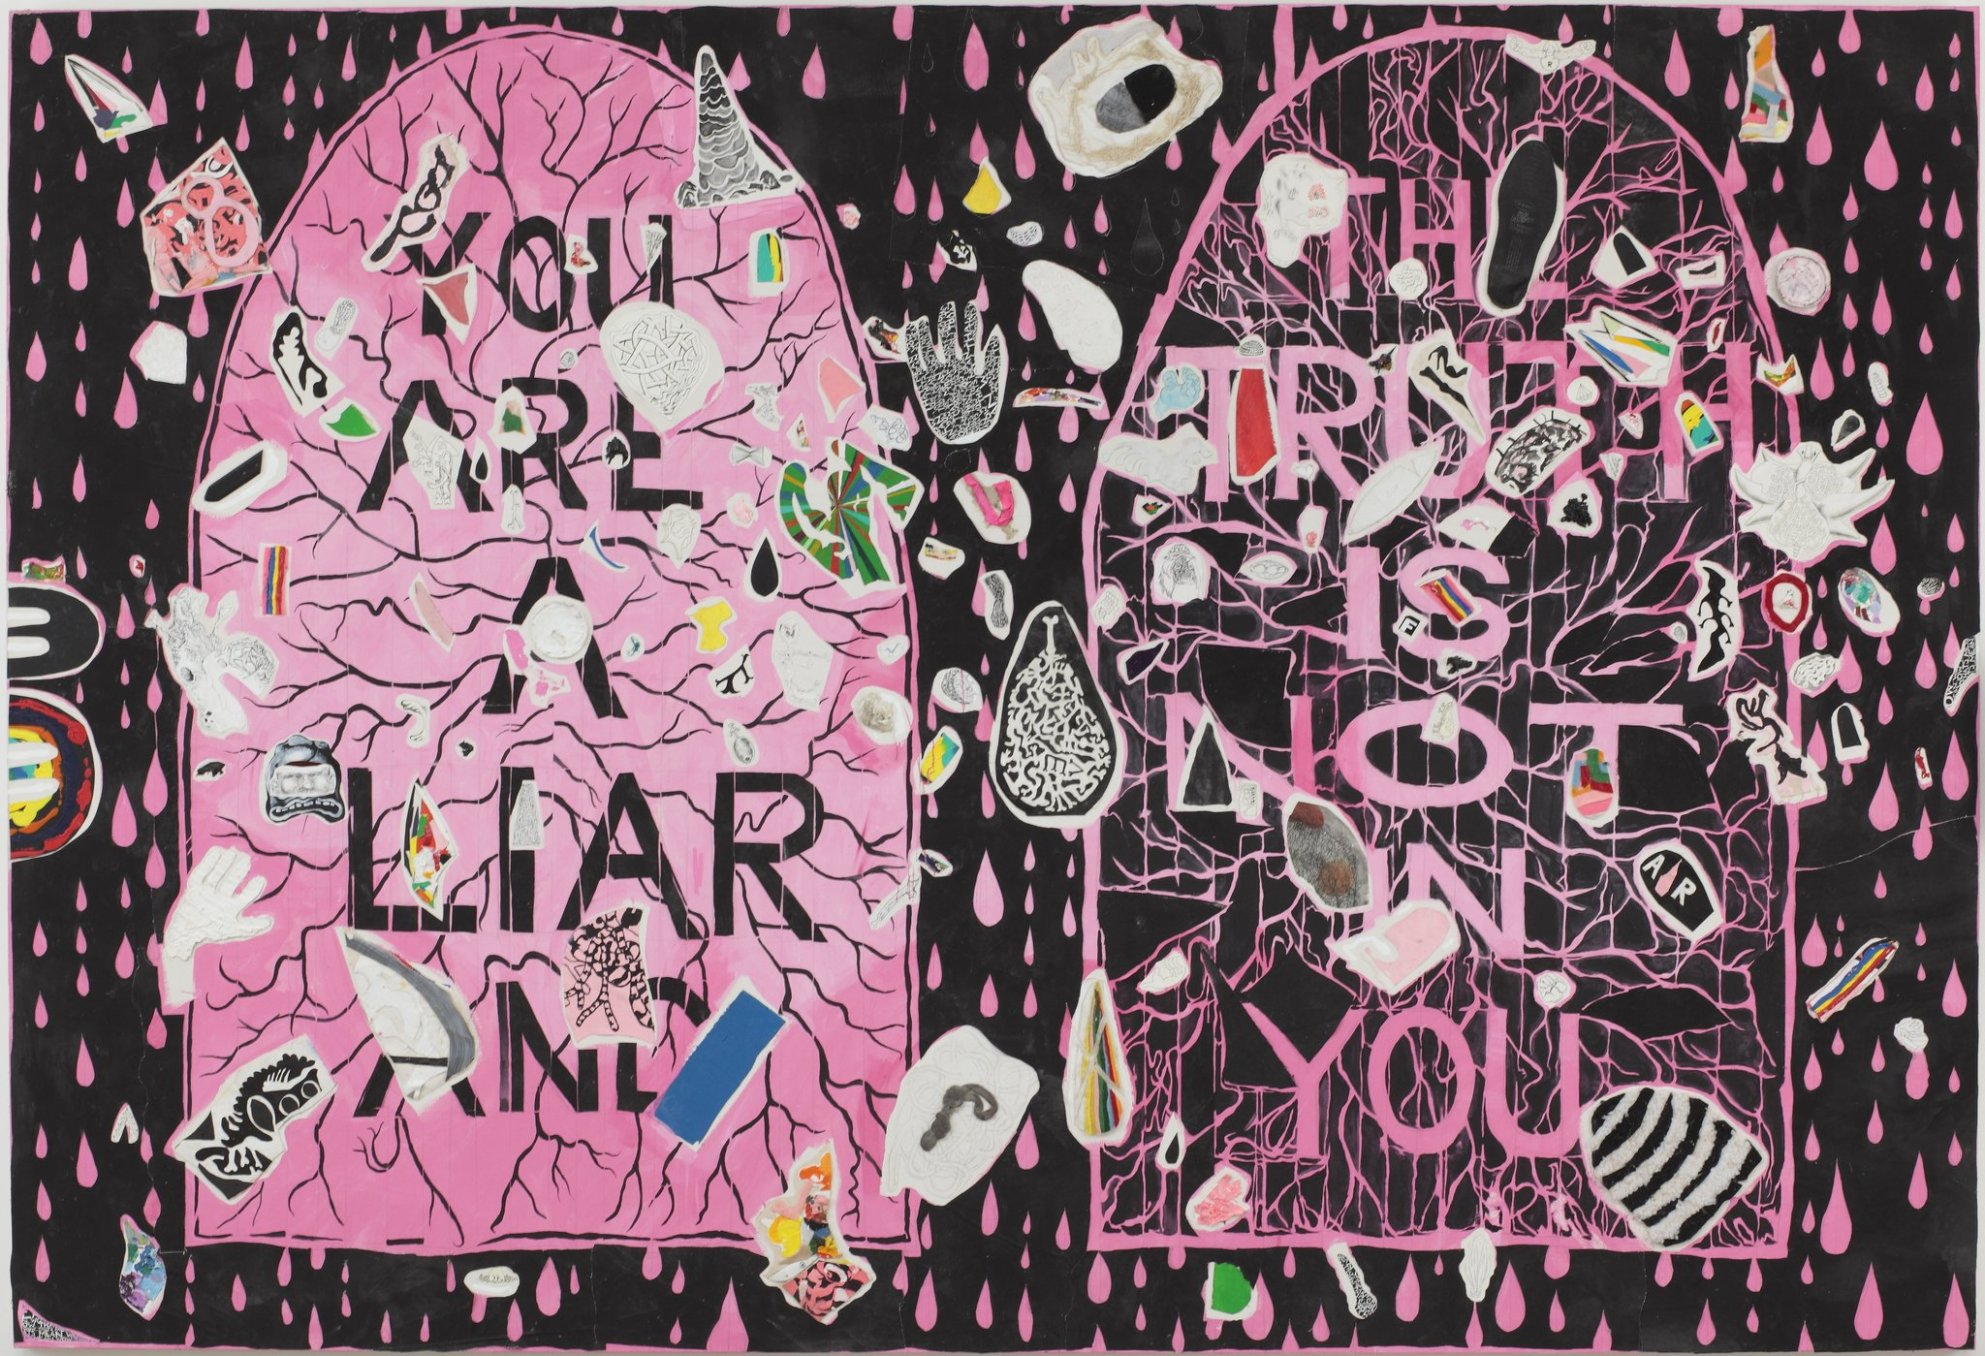 Trenton Doyle Hancock, You Are A Liar And The Truth Is NOT In You, 2010